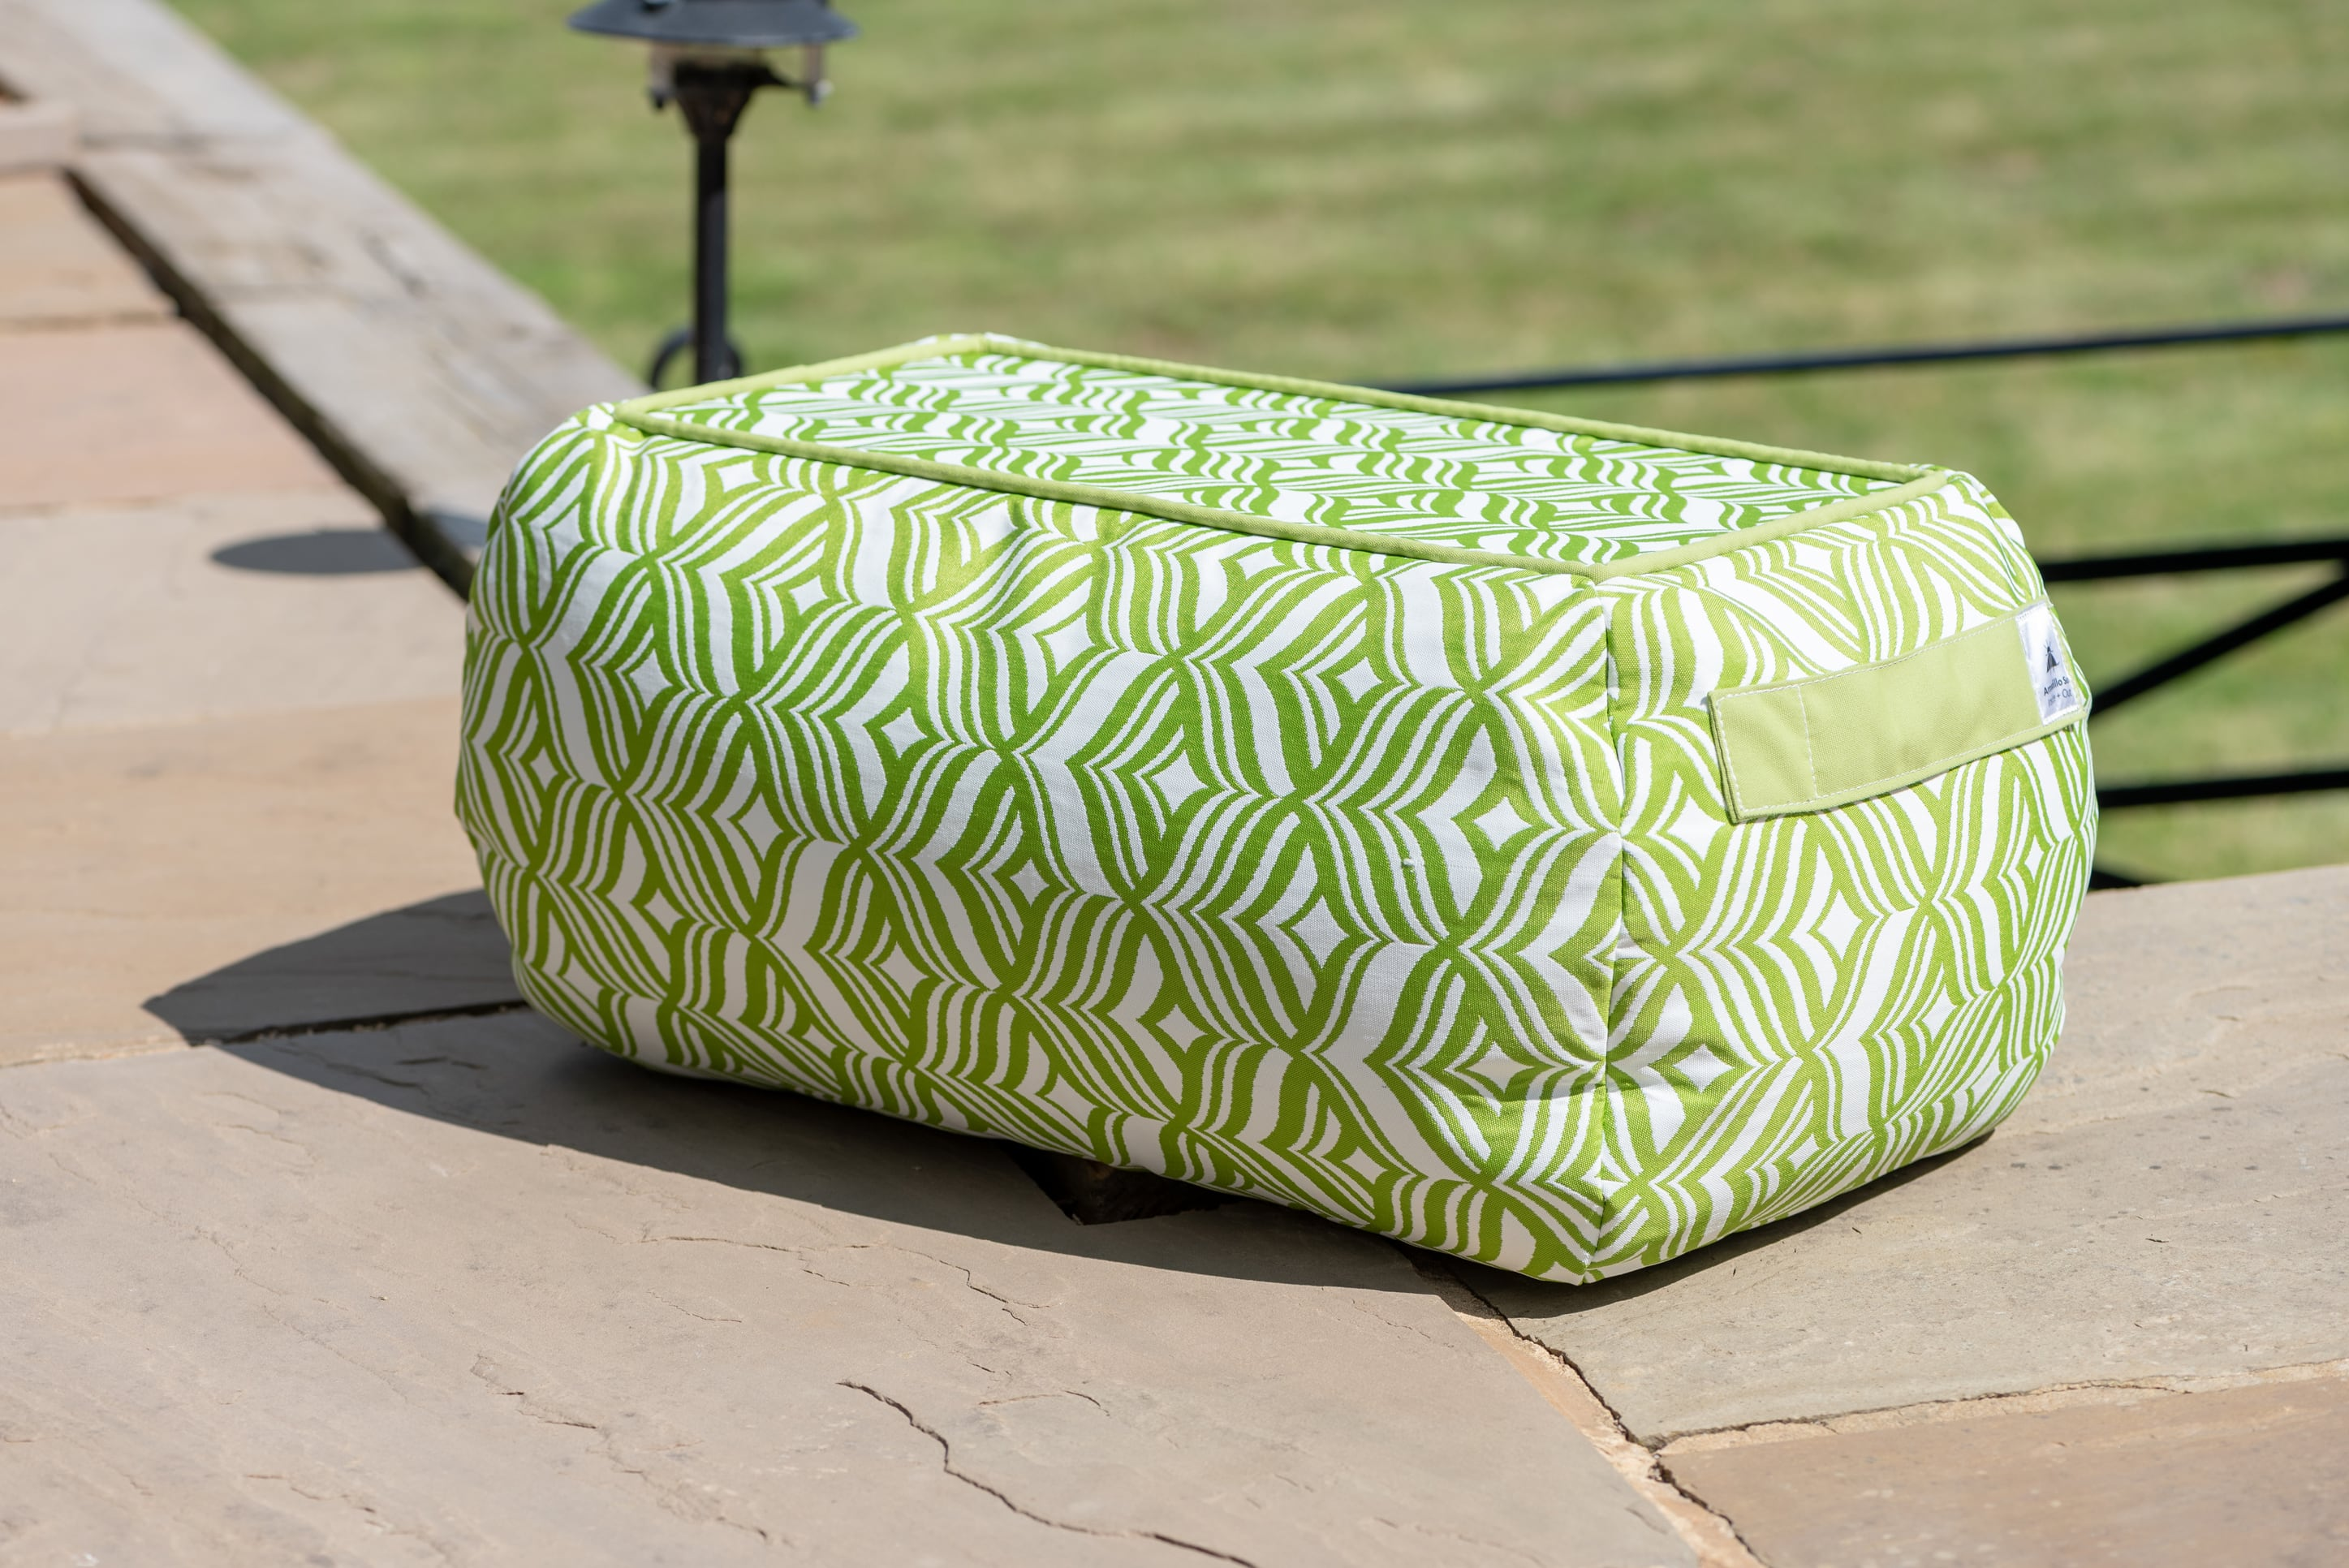 Bean Bag Table in Tulip Green Bean Bag Table armadillosun